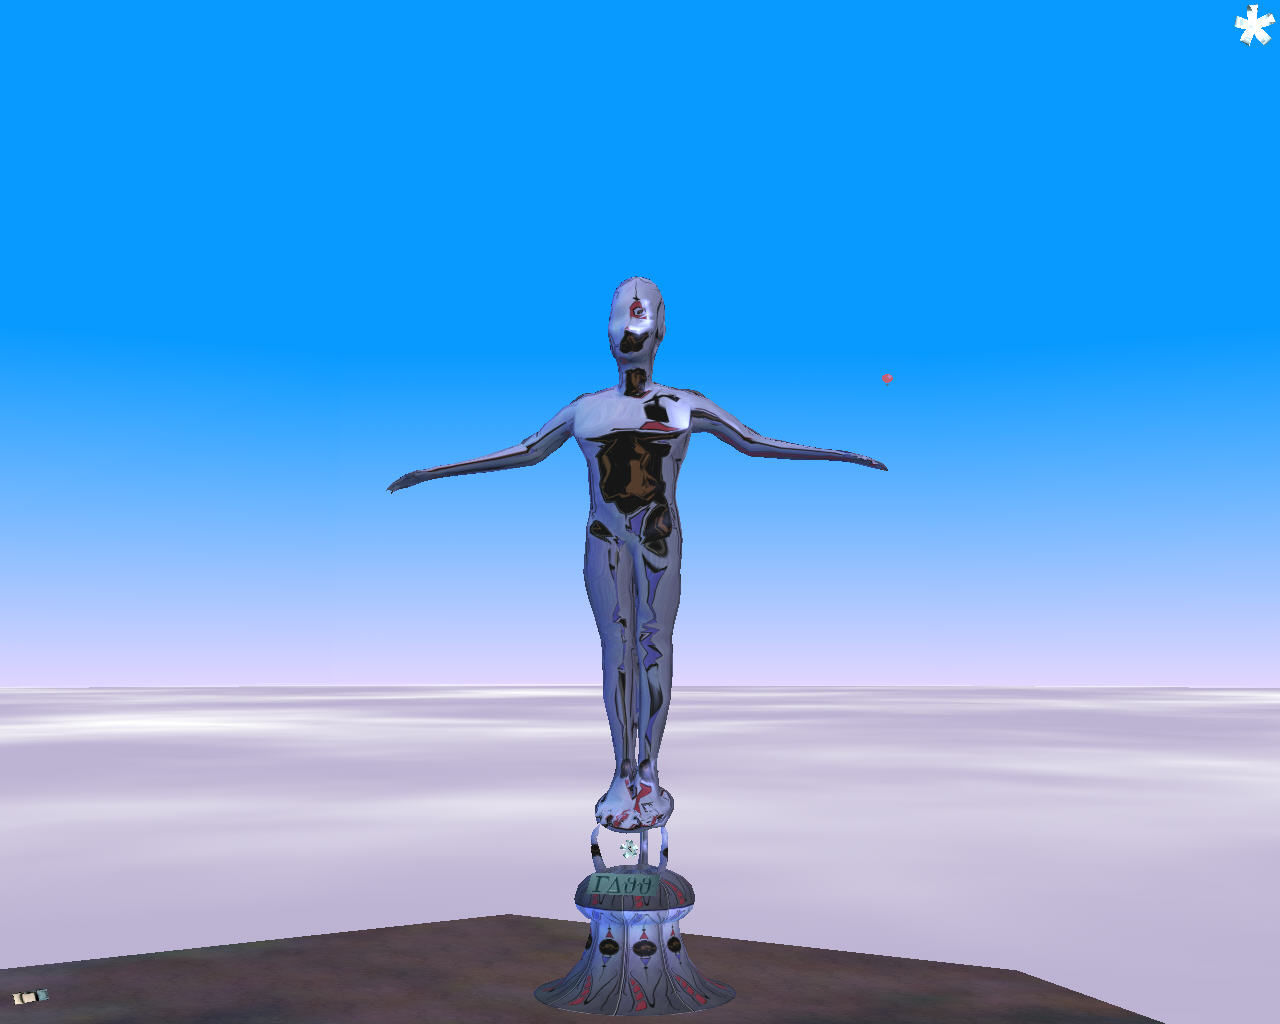 MusicVR Episode 2: Maestro Windows Rio Has Its Statue Of Christ, Maestro's World Has ... This